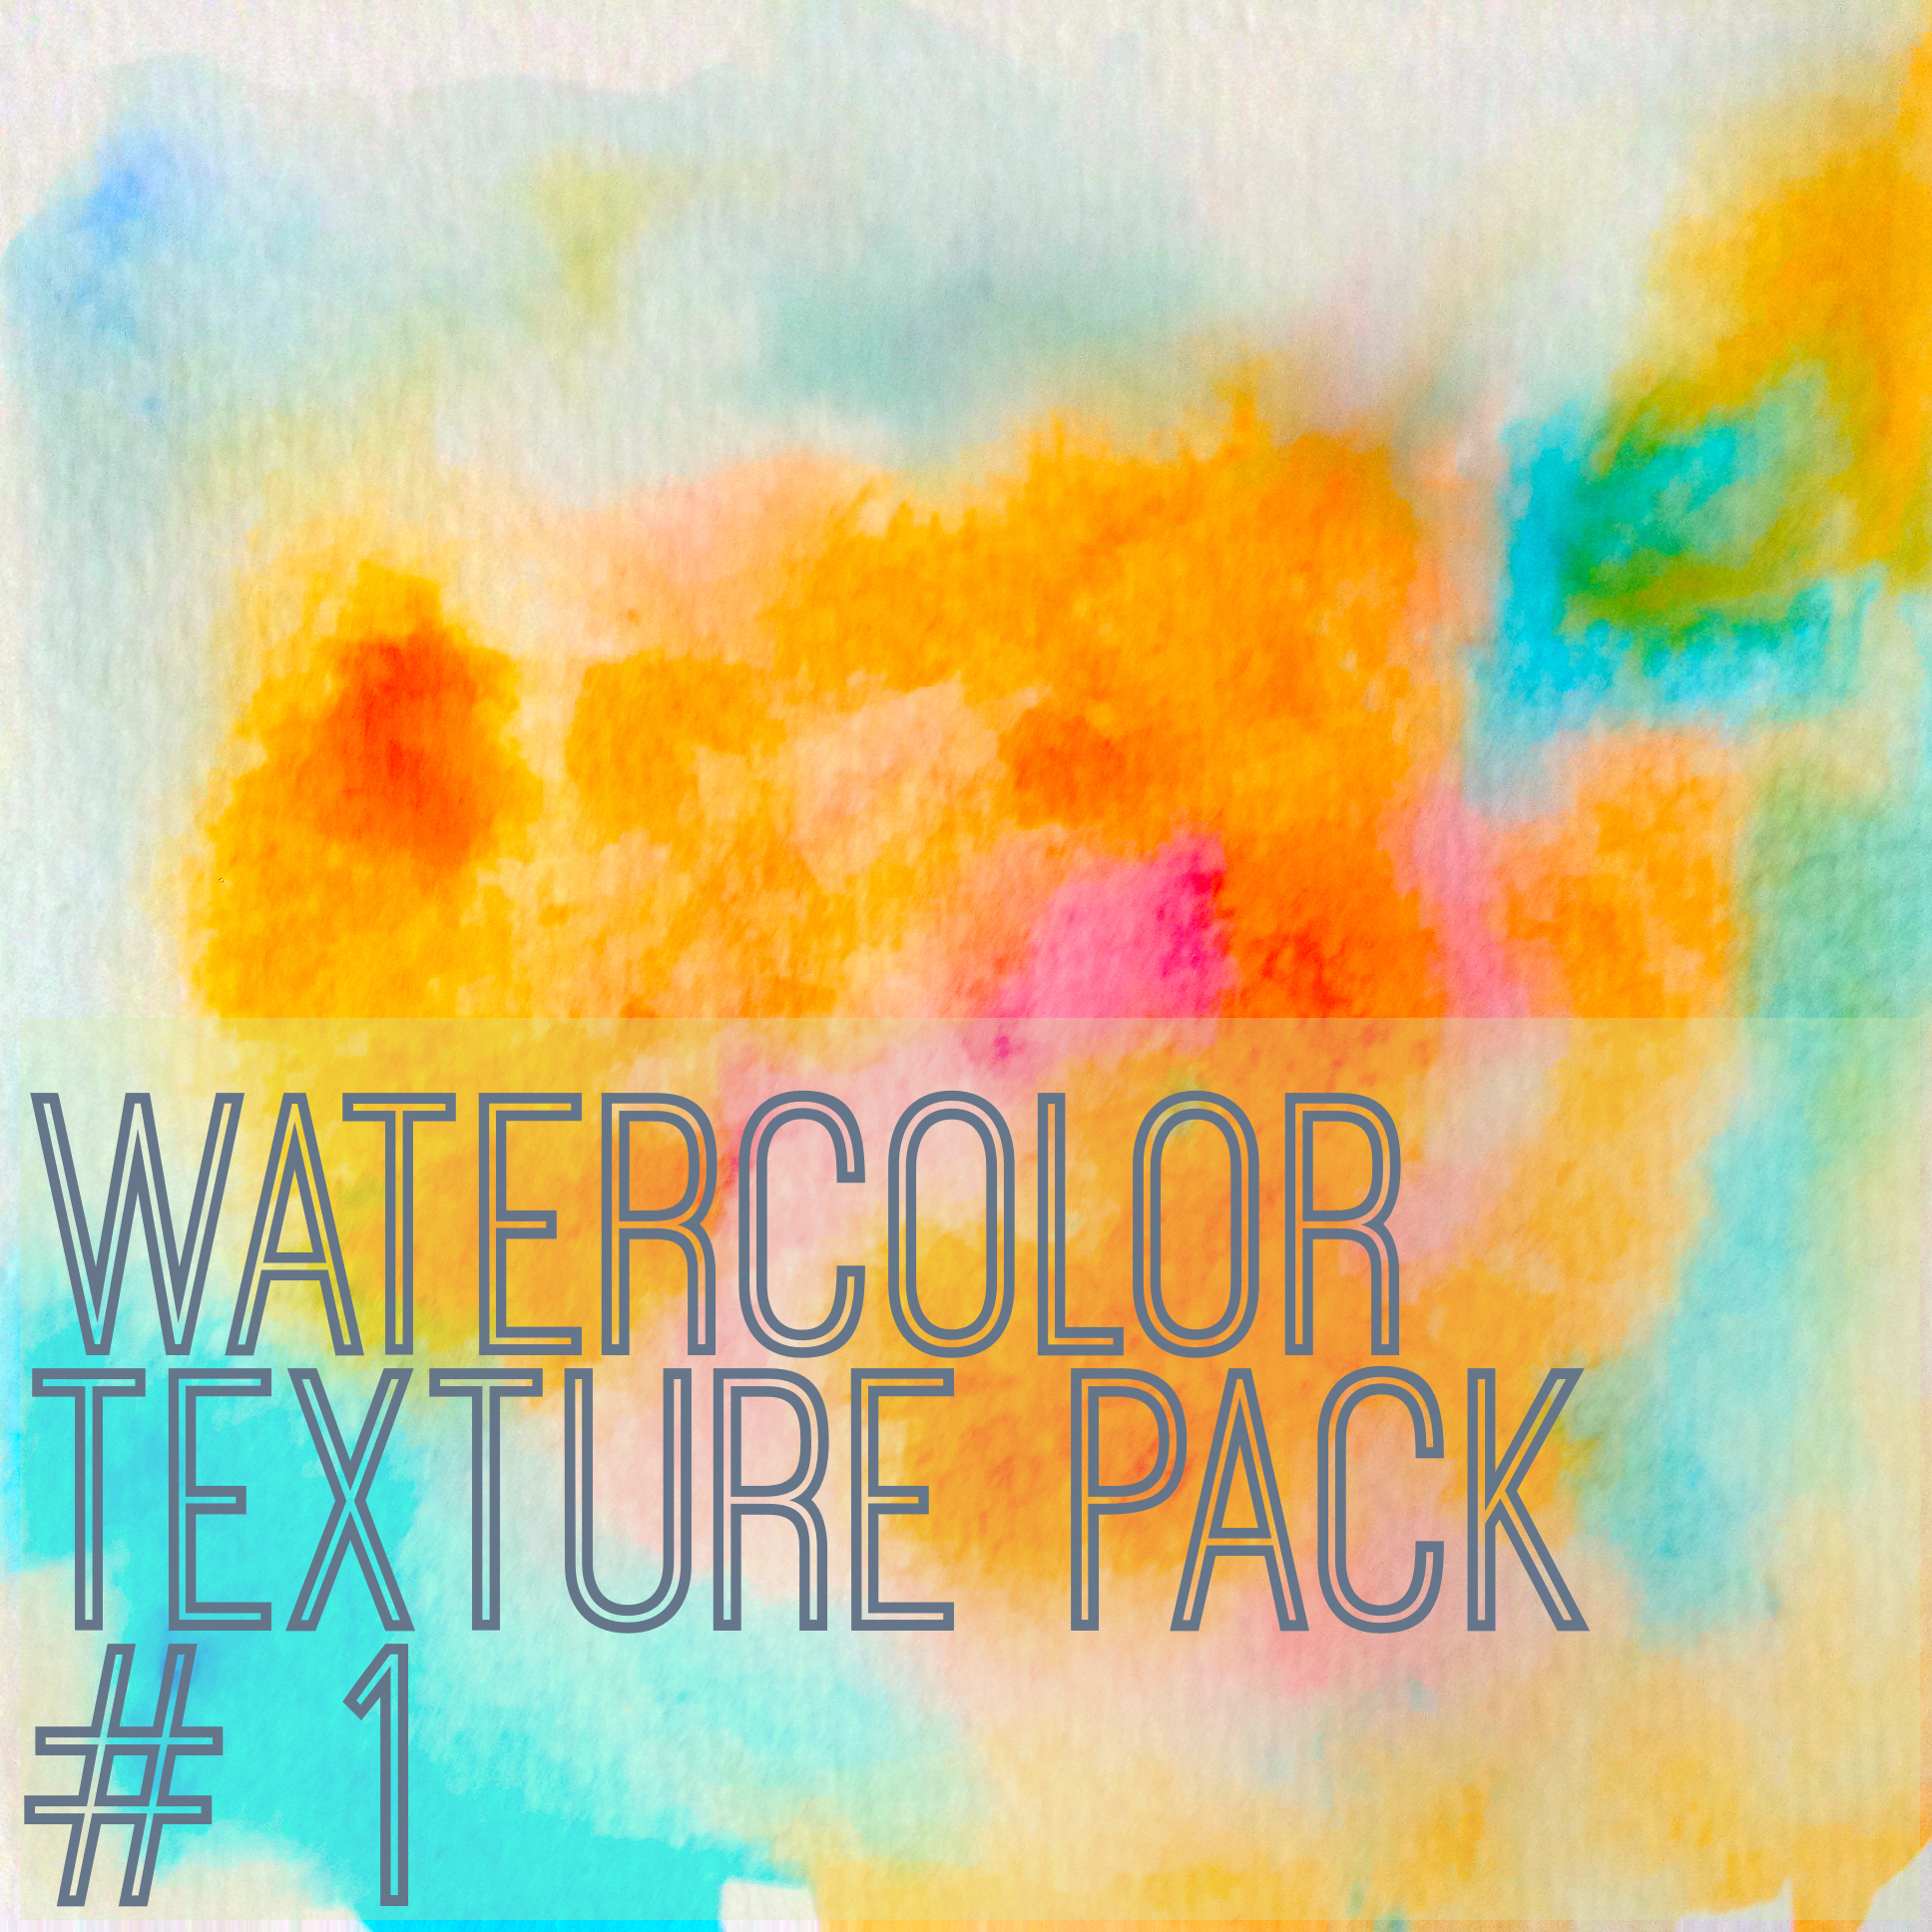 Watercolor-Texture-Pack-1